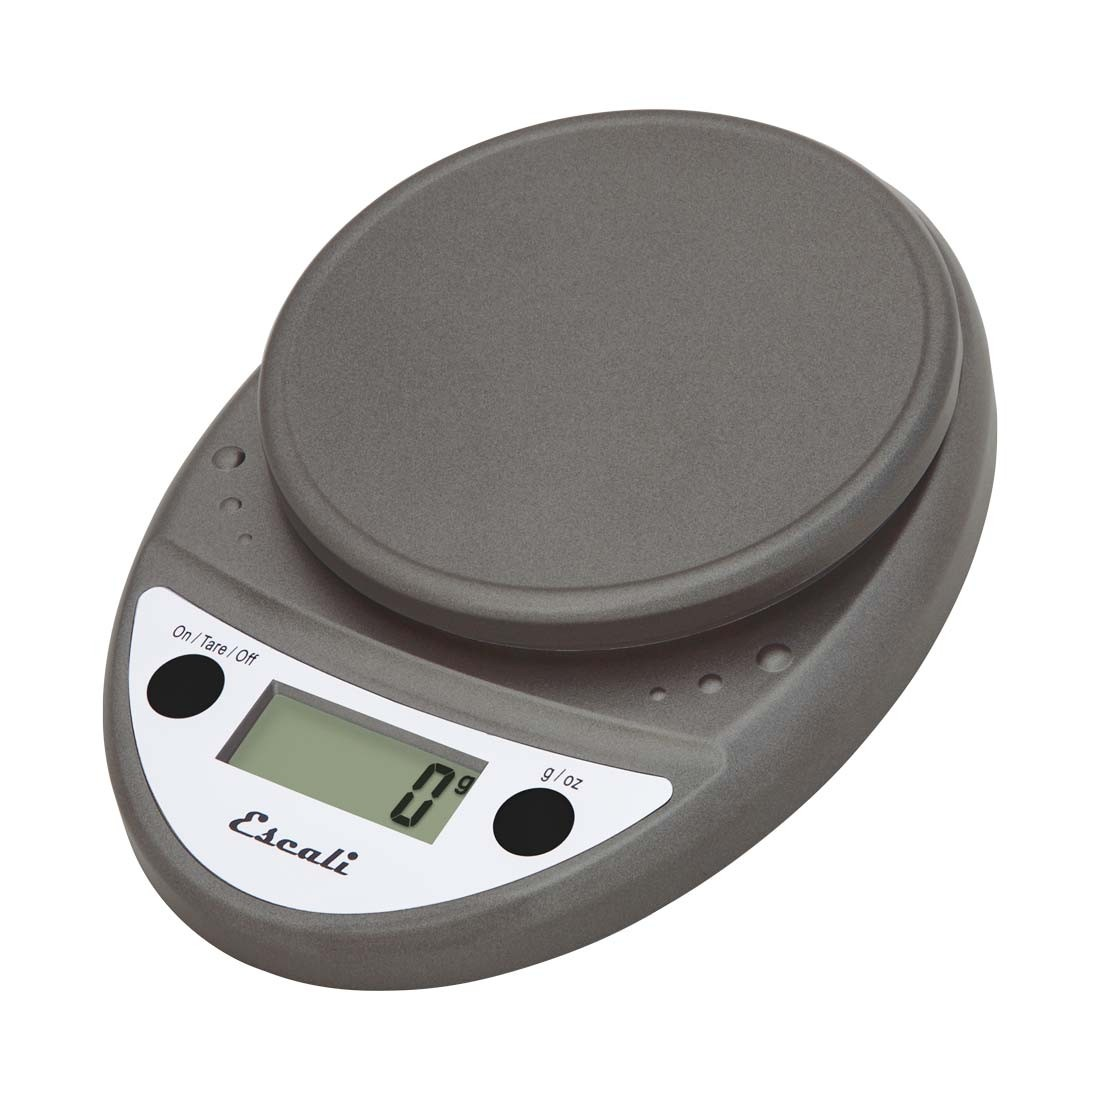 75150 - Escali - Primo Digital Scale - 11 Lbs - Free Shipping US 50